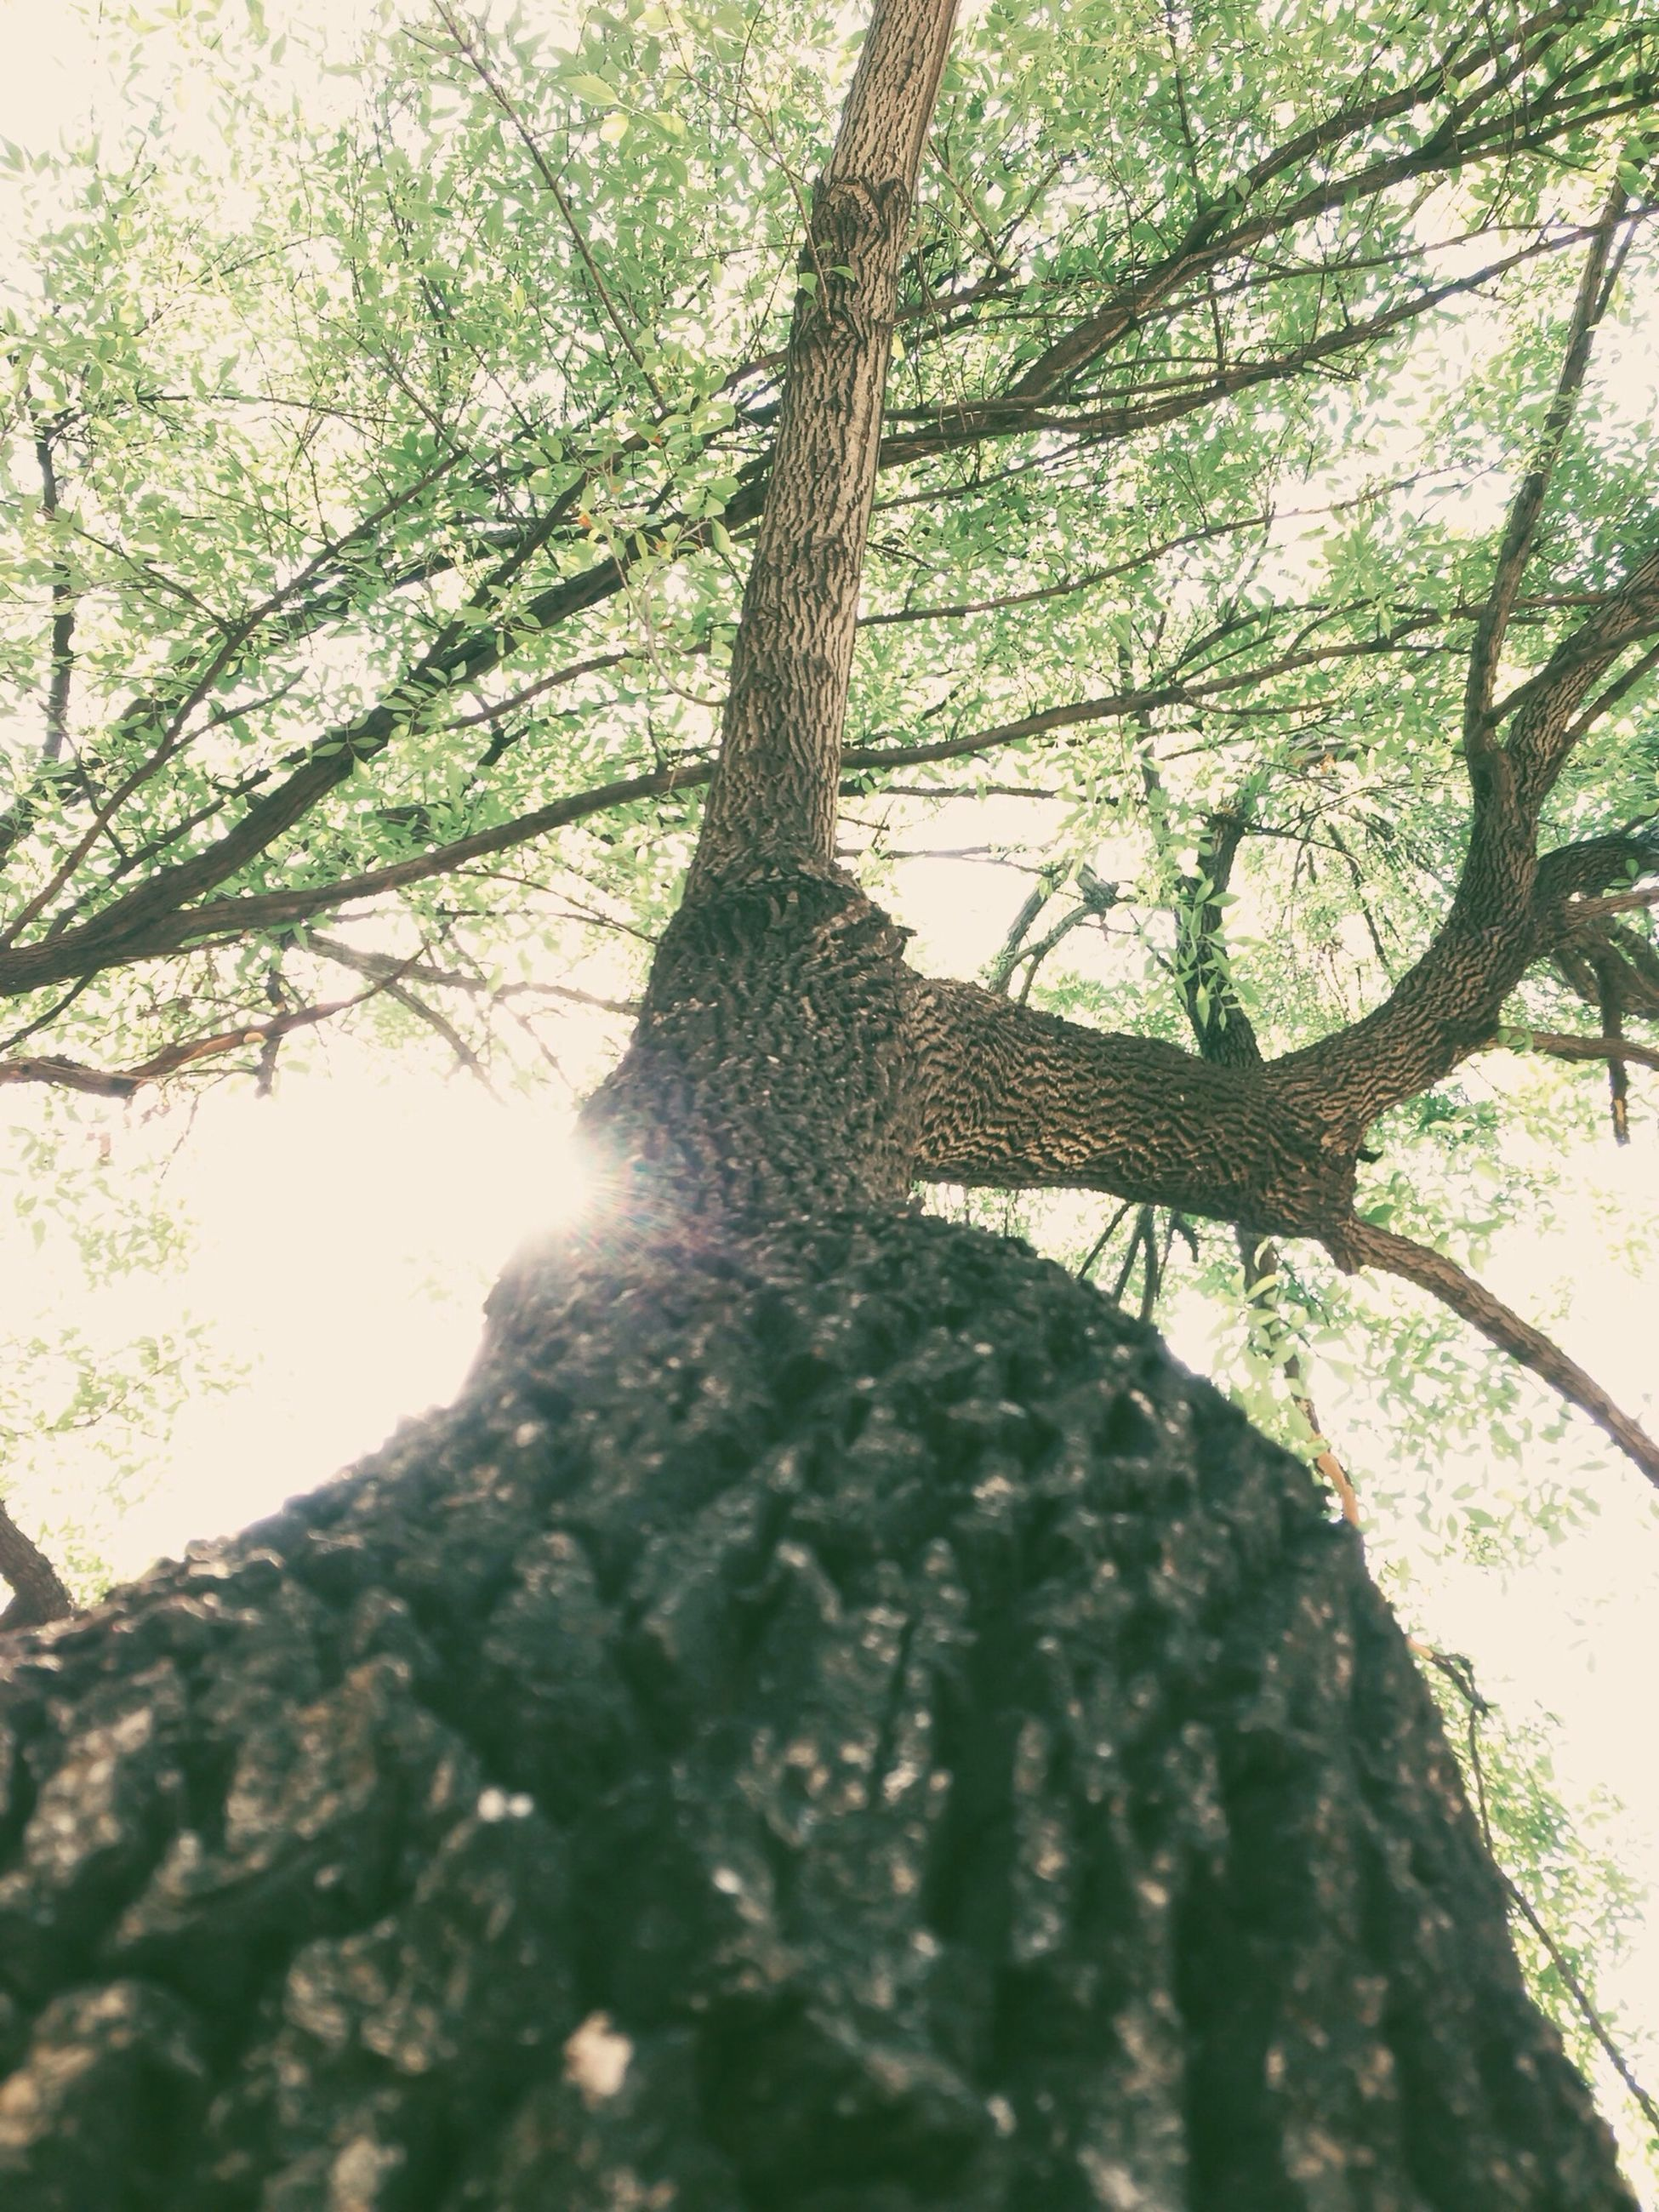 tree, branch, tree trunk, low angle view, growth, nature, tranquility, green color, leaf, sunlight, beauty in nature, forest, day, no people, outdoors, close-up, plant, tranquil scene, wood - material, scenics